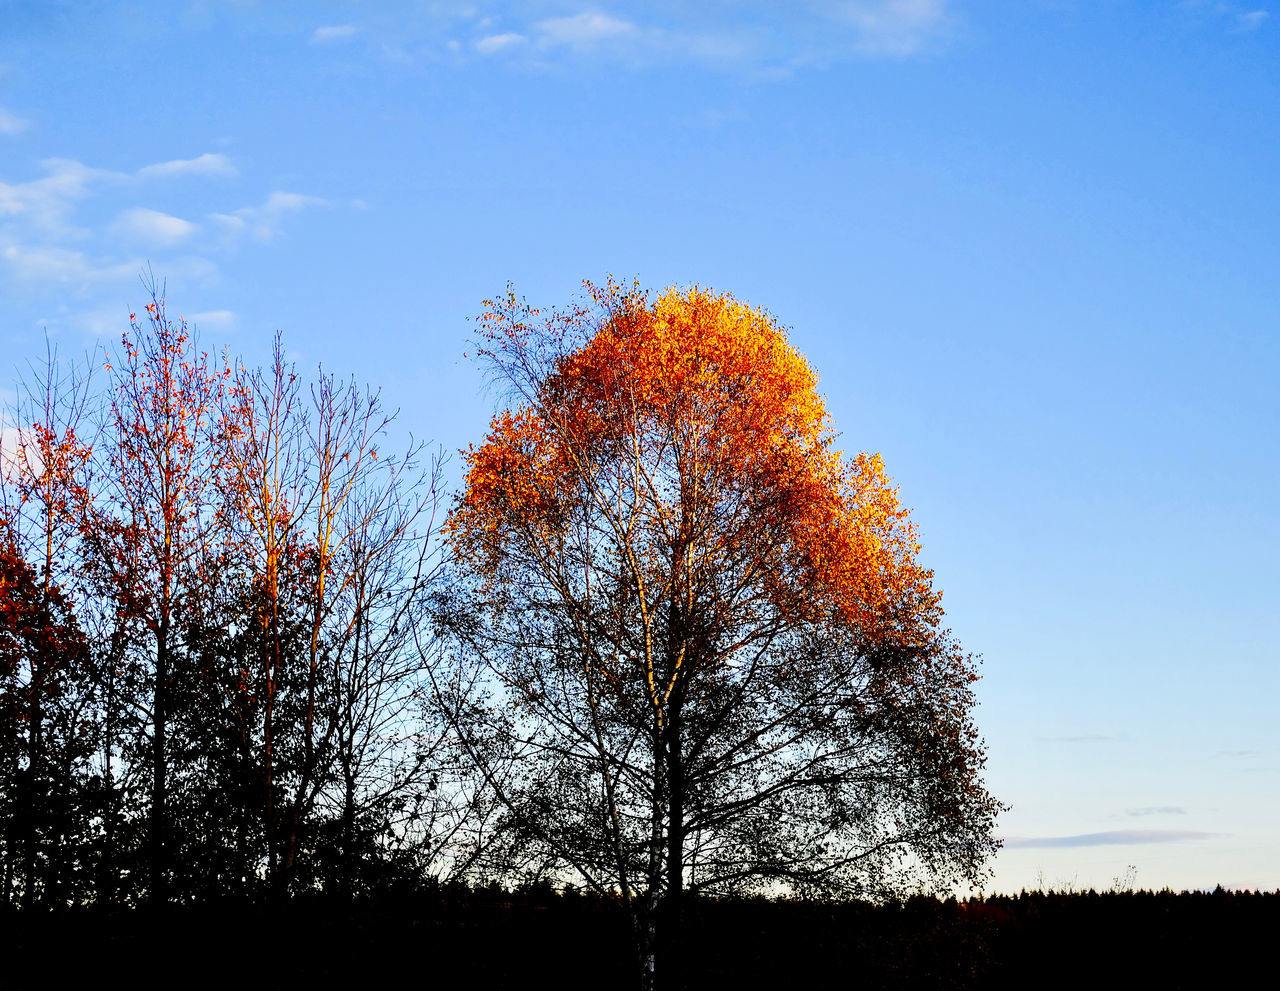 tree, autumn, nature, change, beauty in nature, tranquility, tranquil scene, outdoors, sky, leaf, day, scenics, maple tree, silhouette, no people, branch